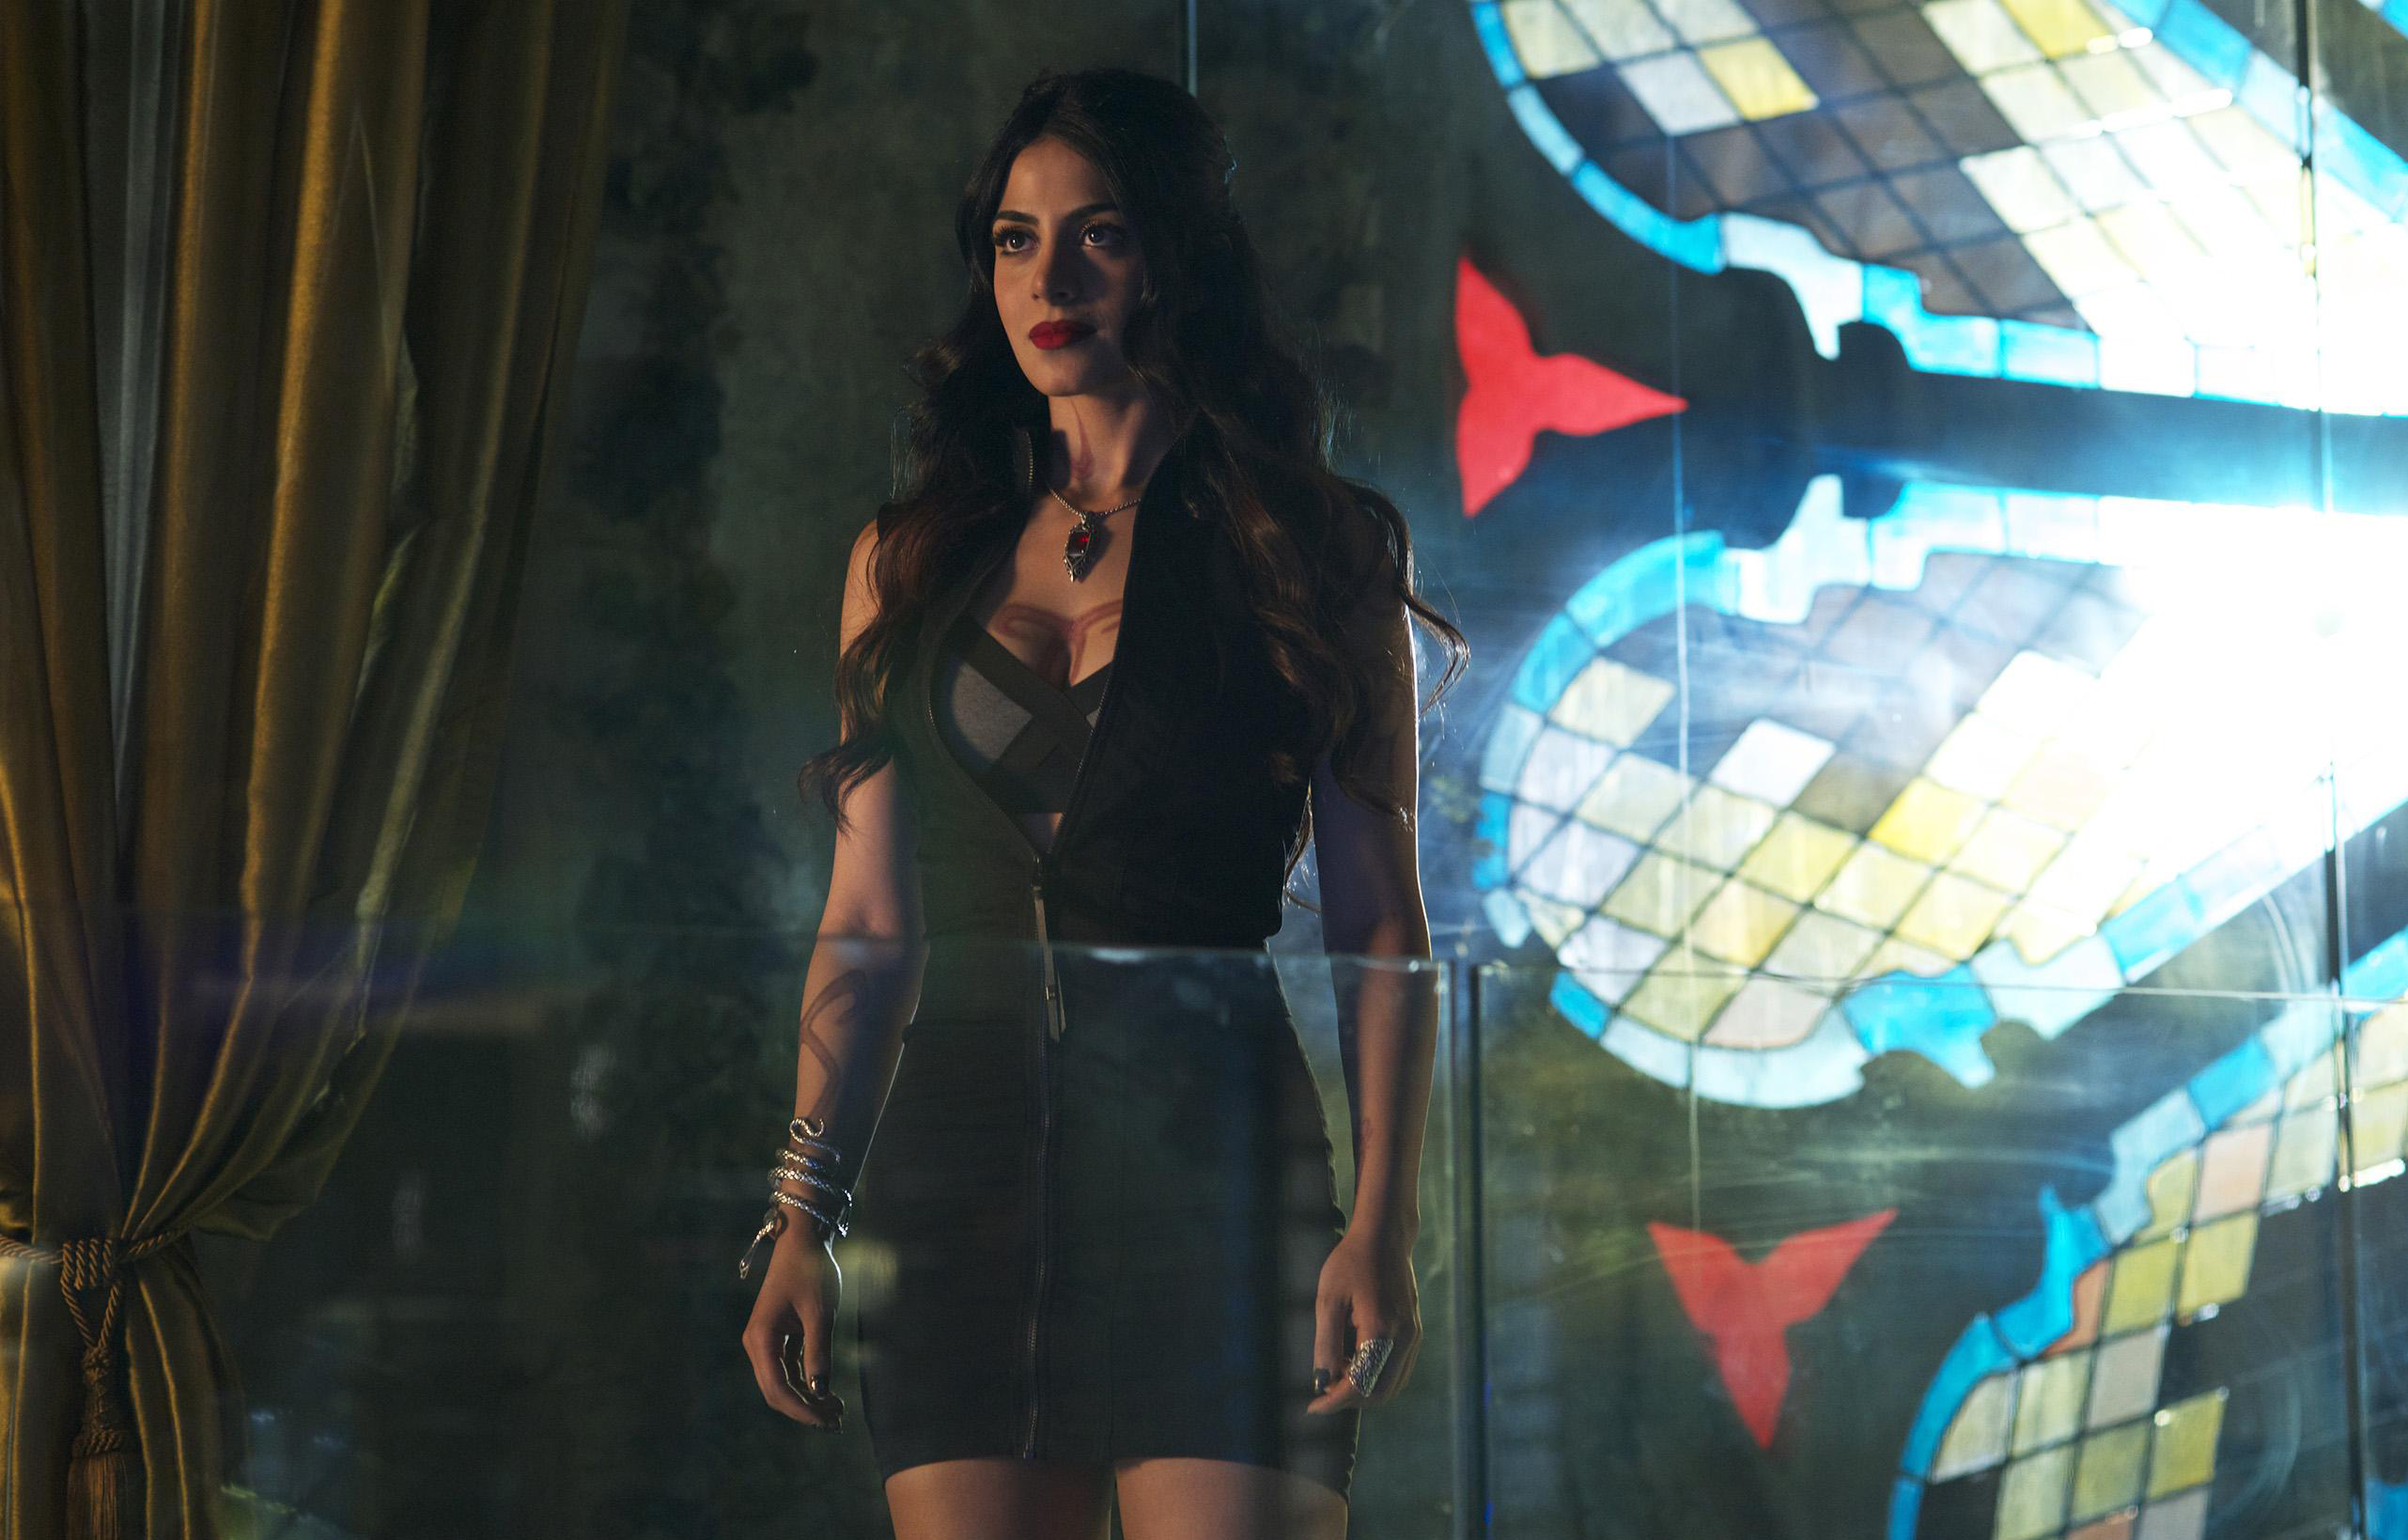 Shadowhunters Episode 1